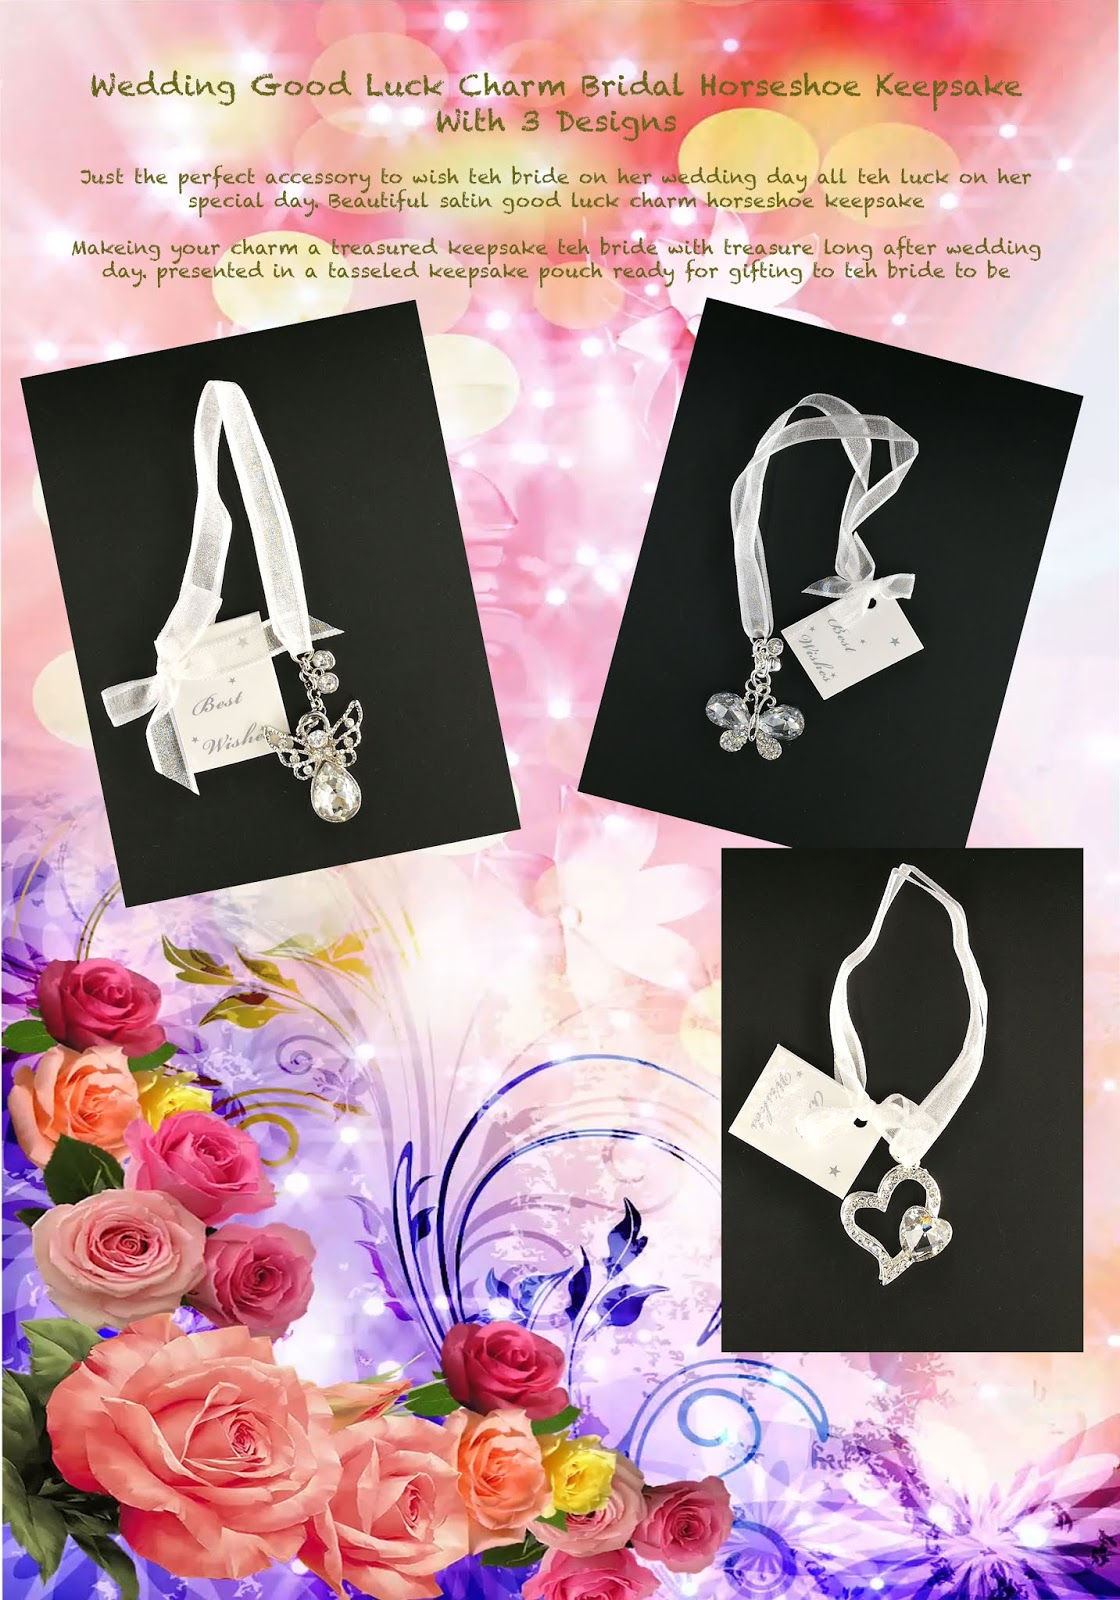 Charm Bridal Luck With Luck Keepsake With 3 Horseshoe